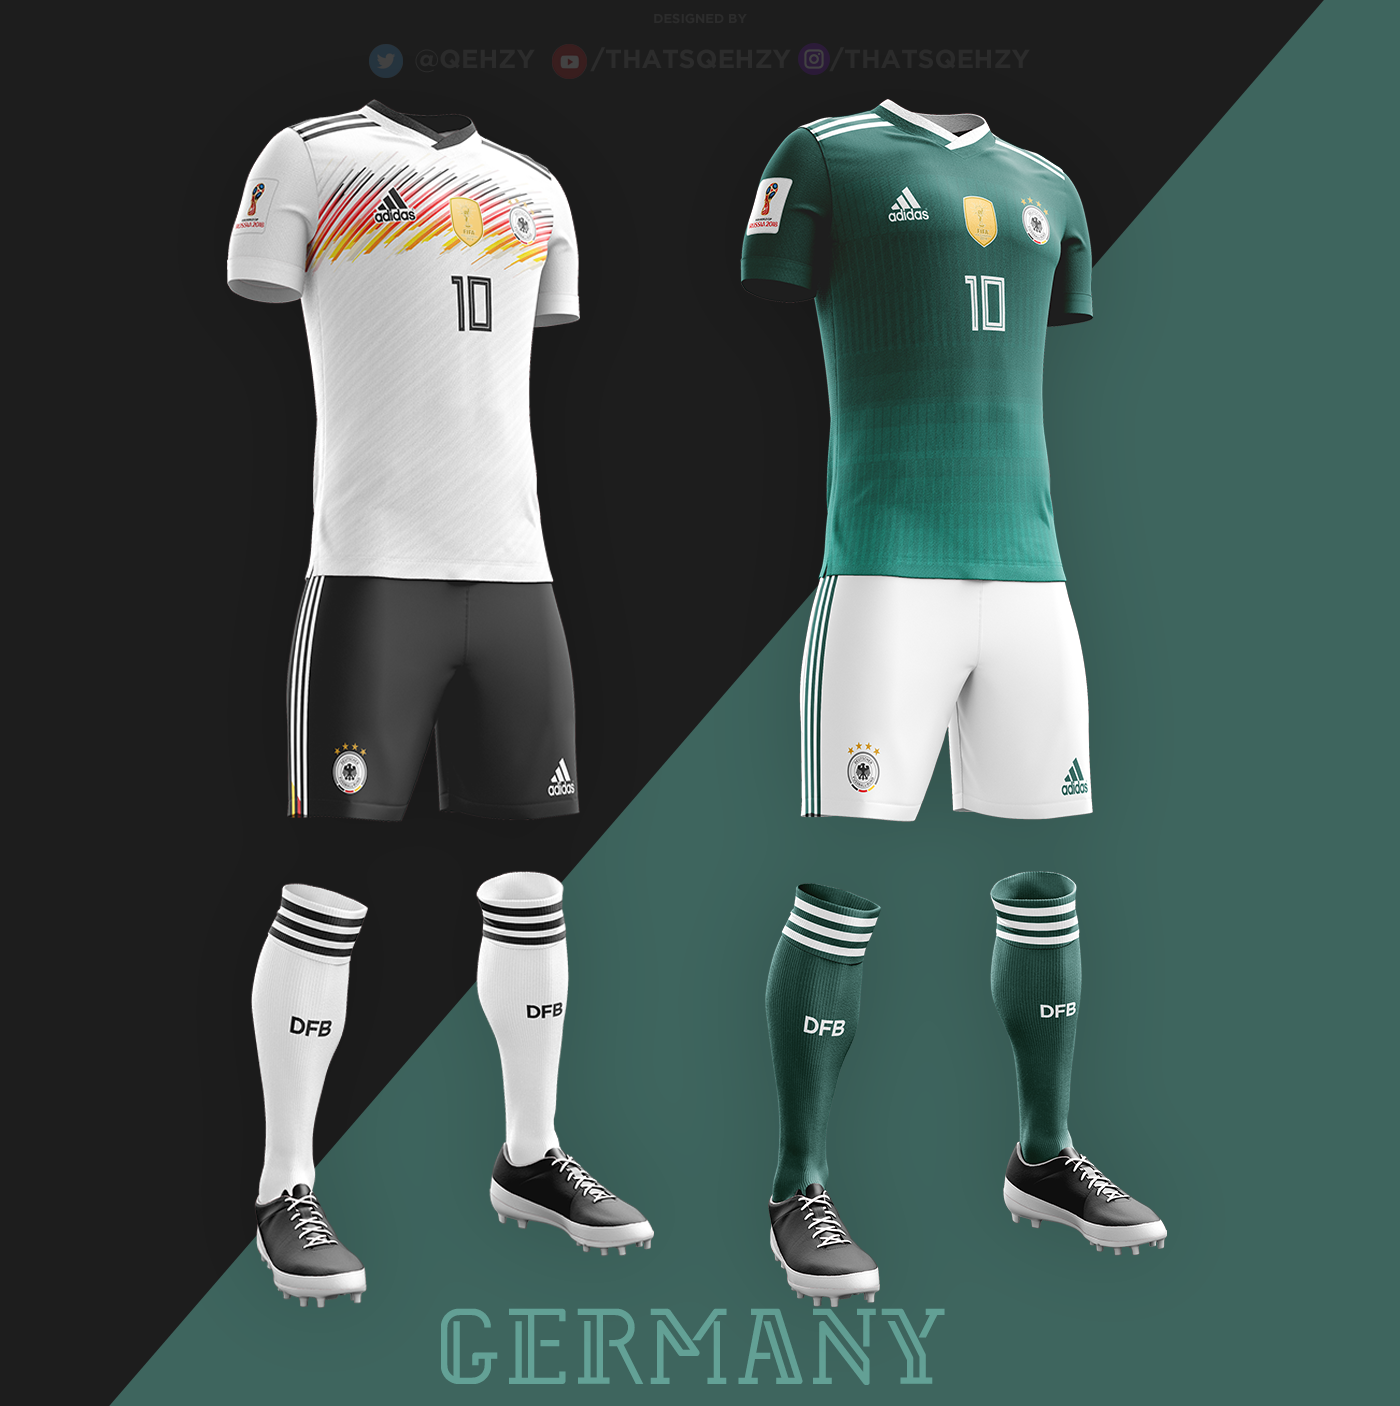 Fifa World Cup 2018 Kits Redesigned On Behance In 2020 Soccer Uniforms Design World Cup Fifa Football